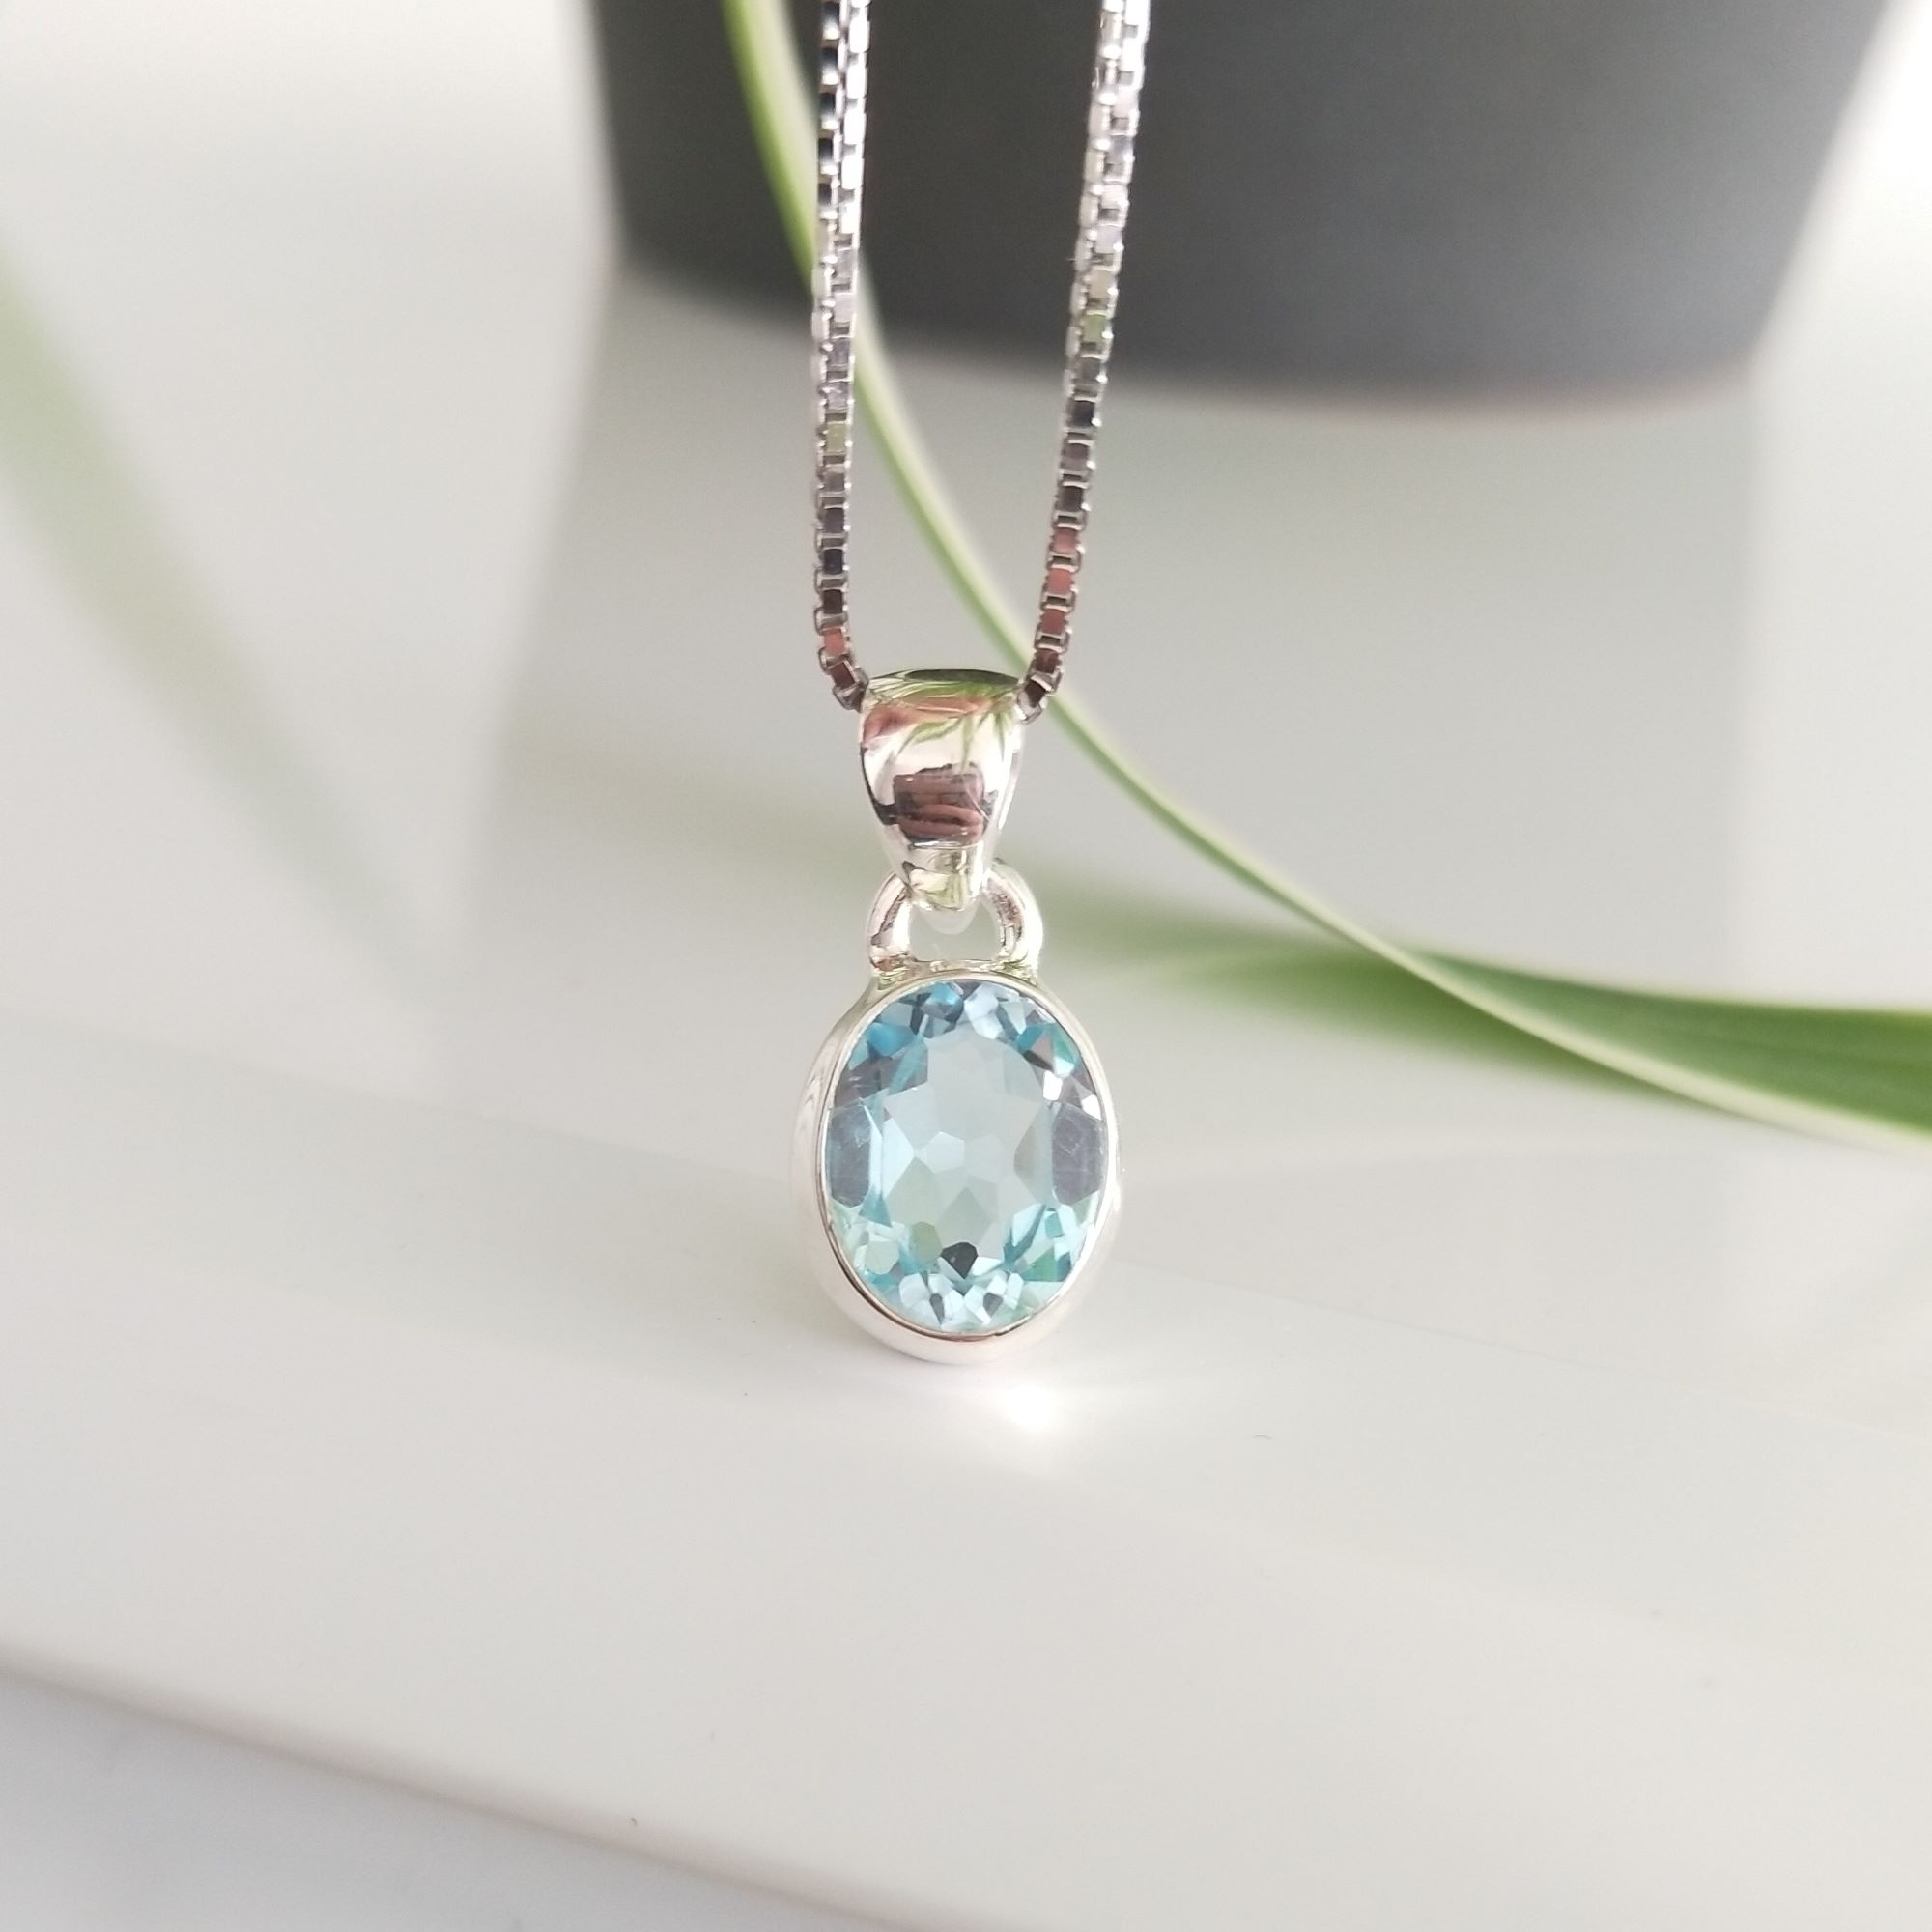 Elegant Sterling Silver Pendant Decorated with Oval Brilliant cut Natural Blue Topaz(GRADE:AAA) Necklace  Image